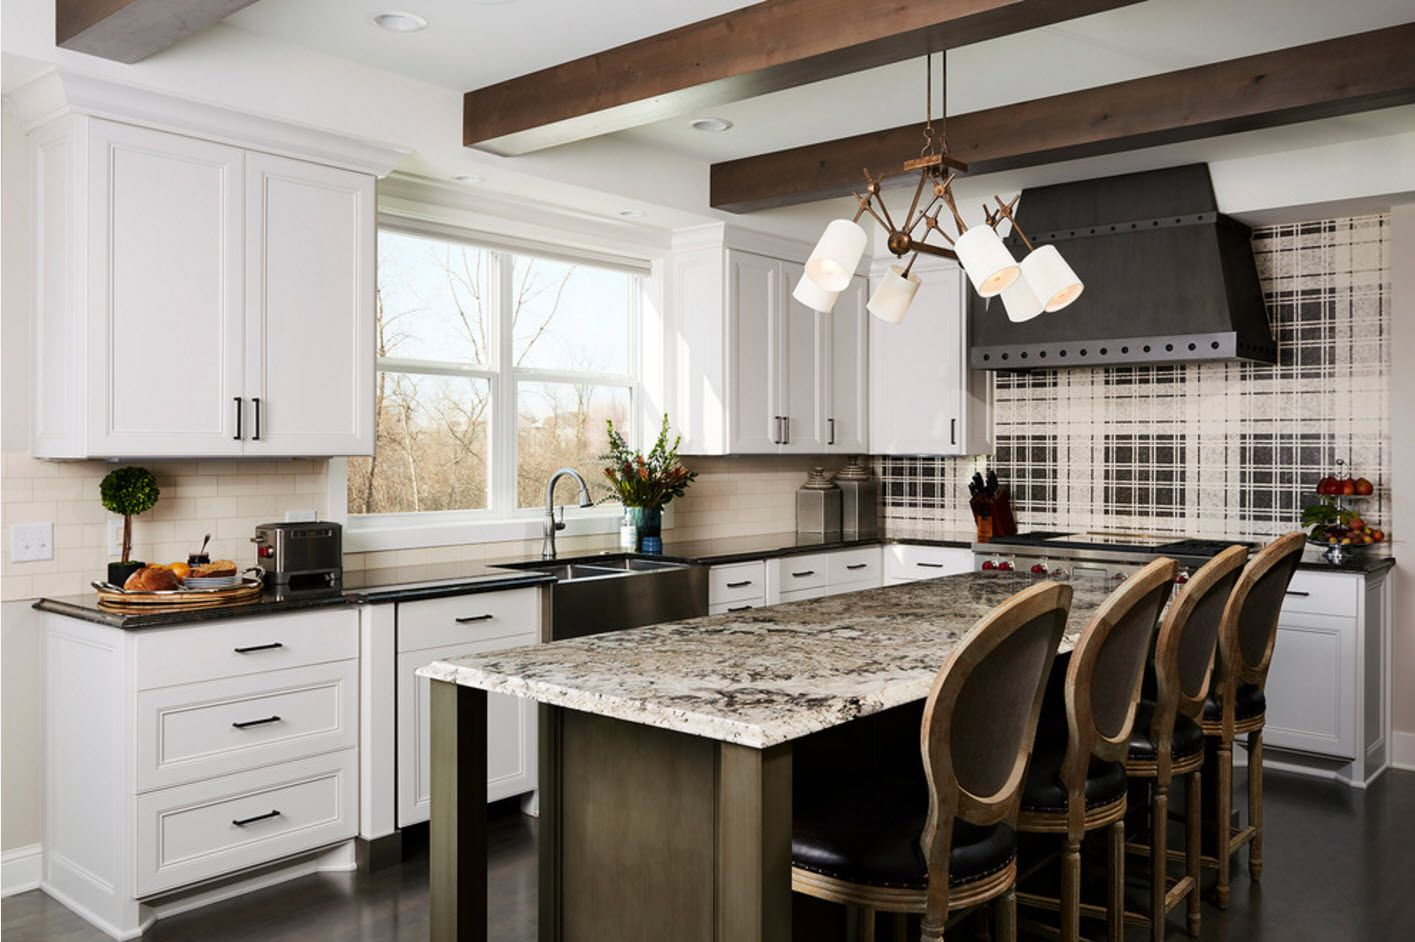 Open ceiling beams in the contemporary styled kitchen